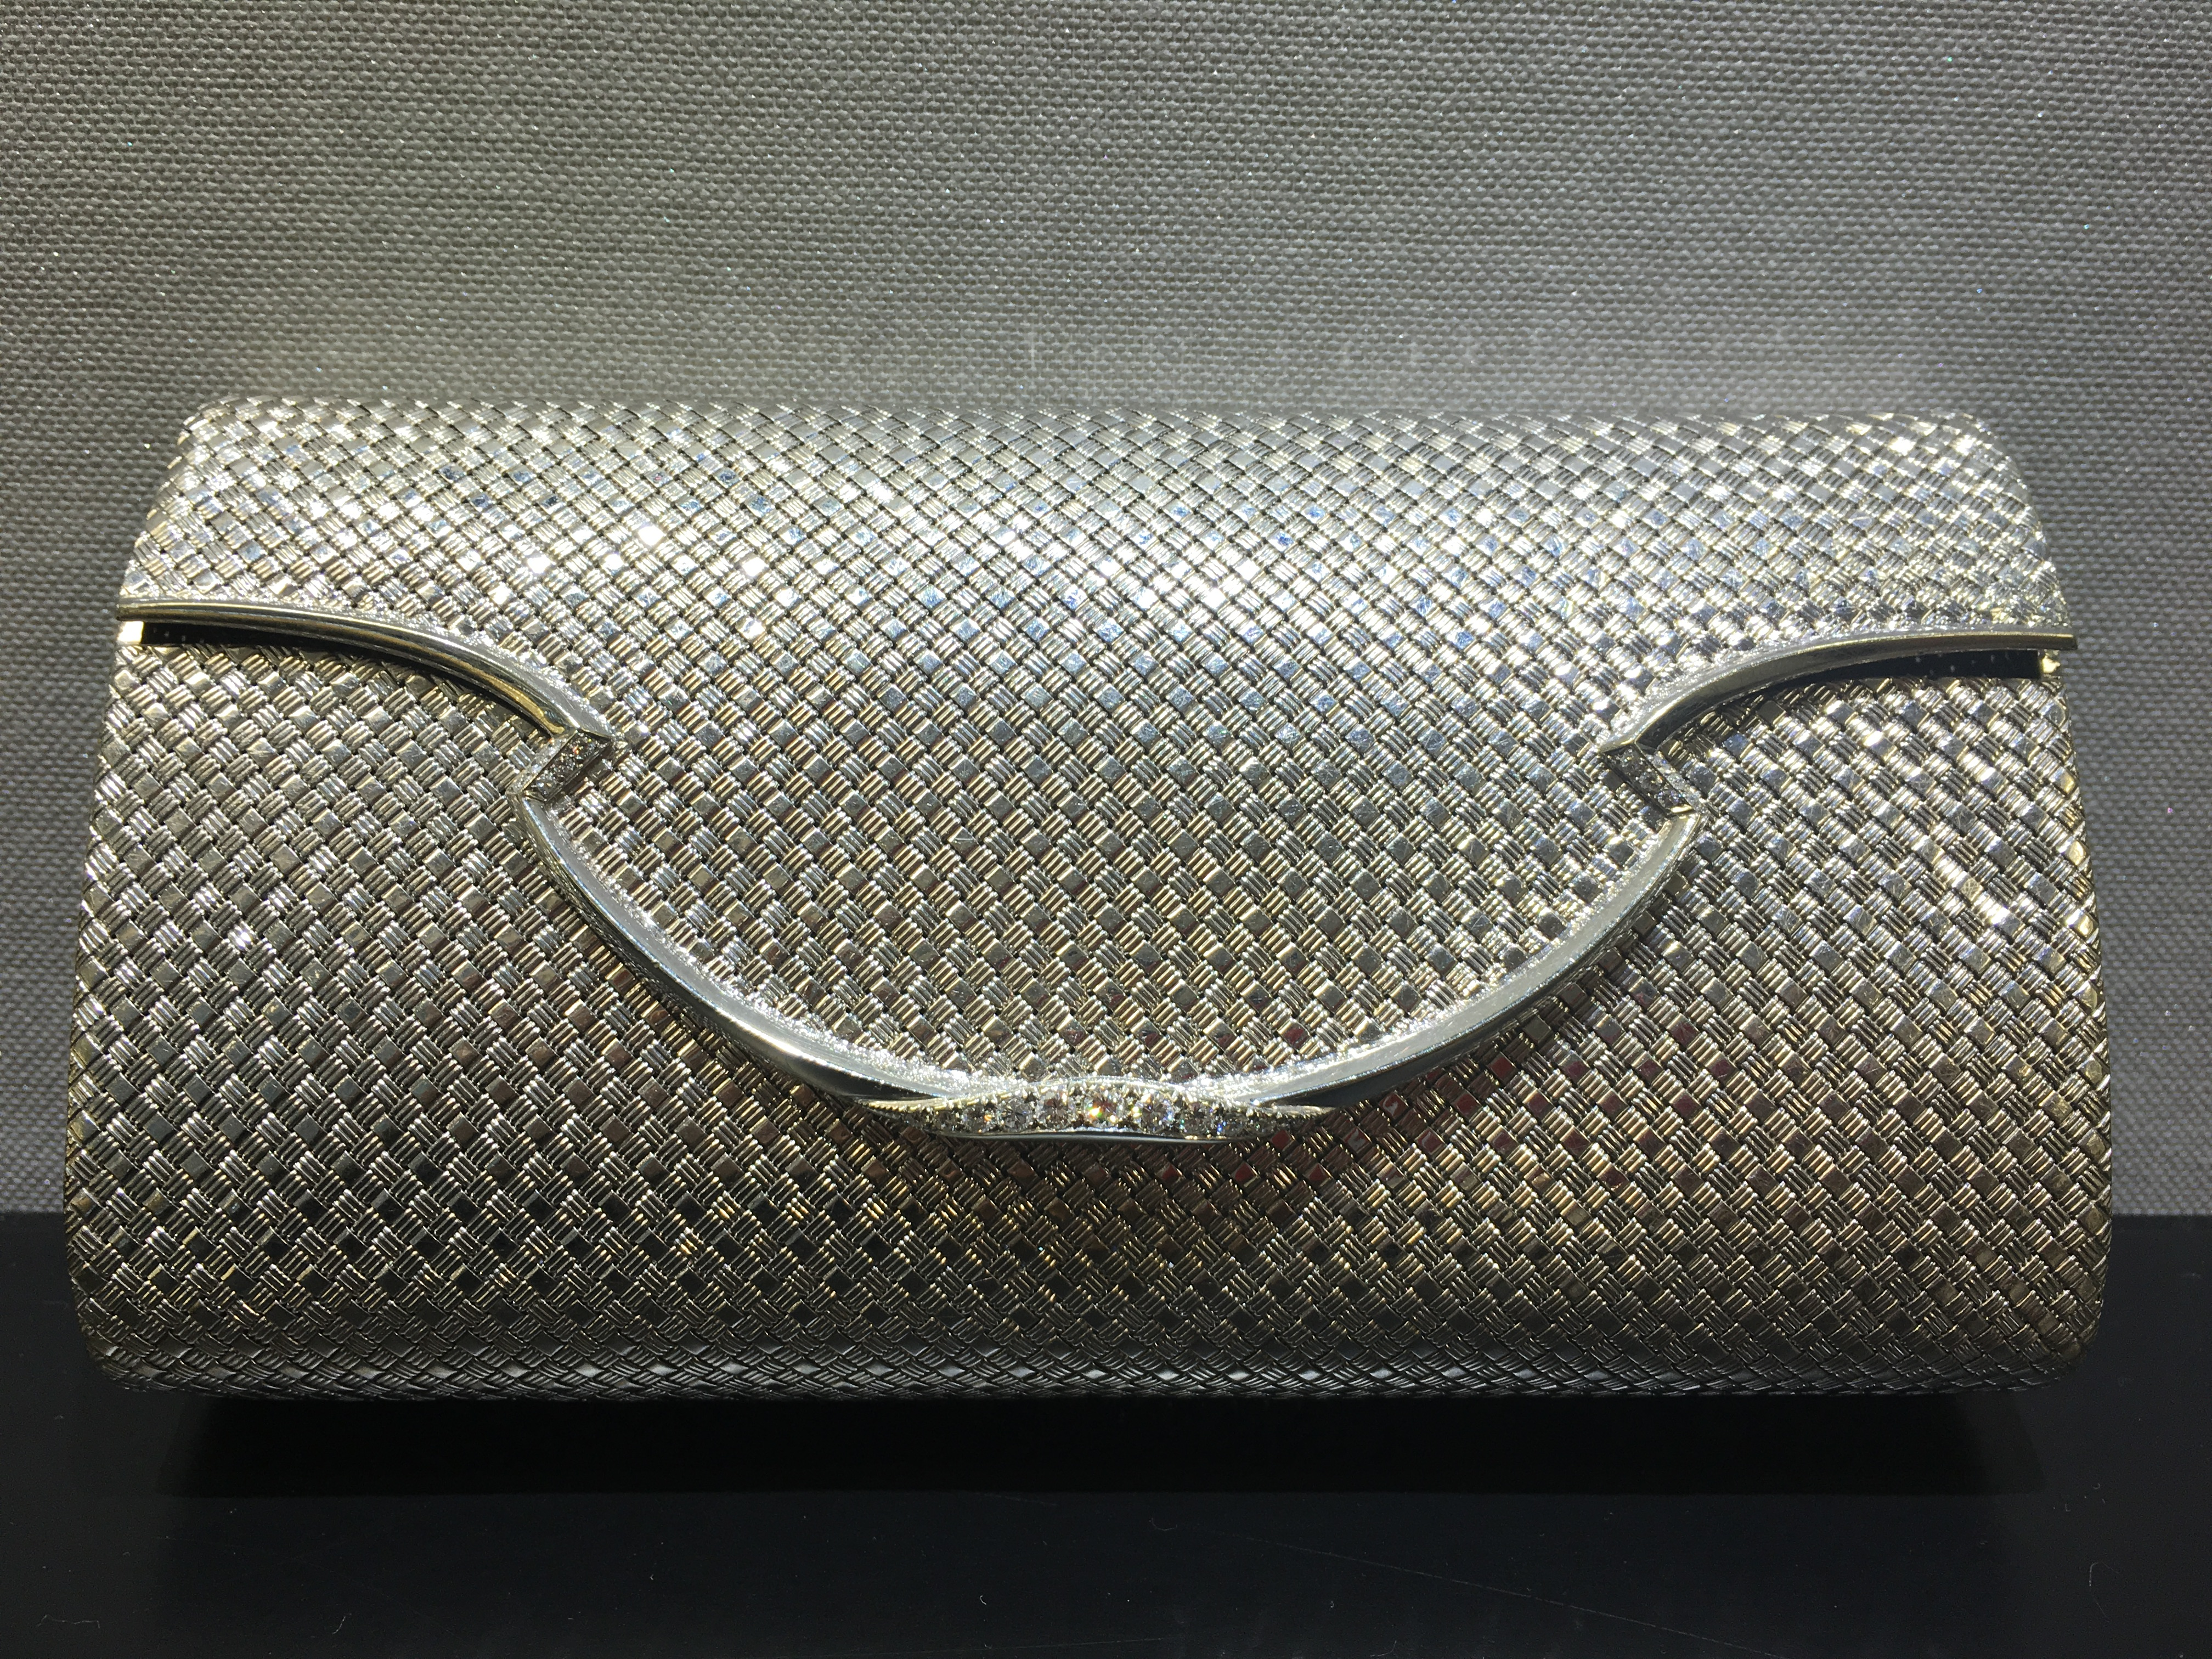 Bulgari 18K white gold vintage clutch